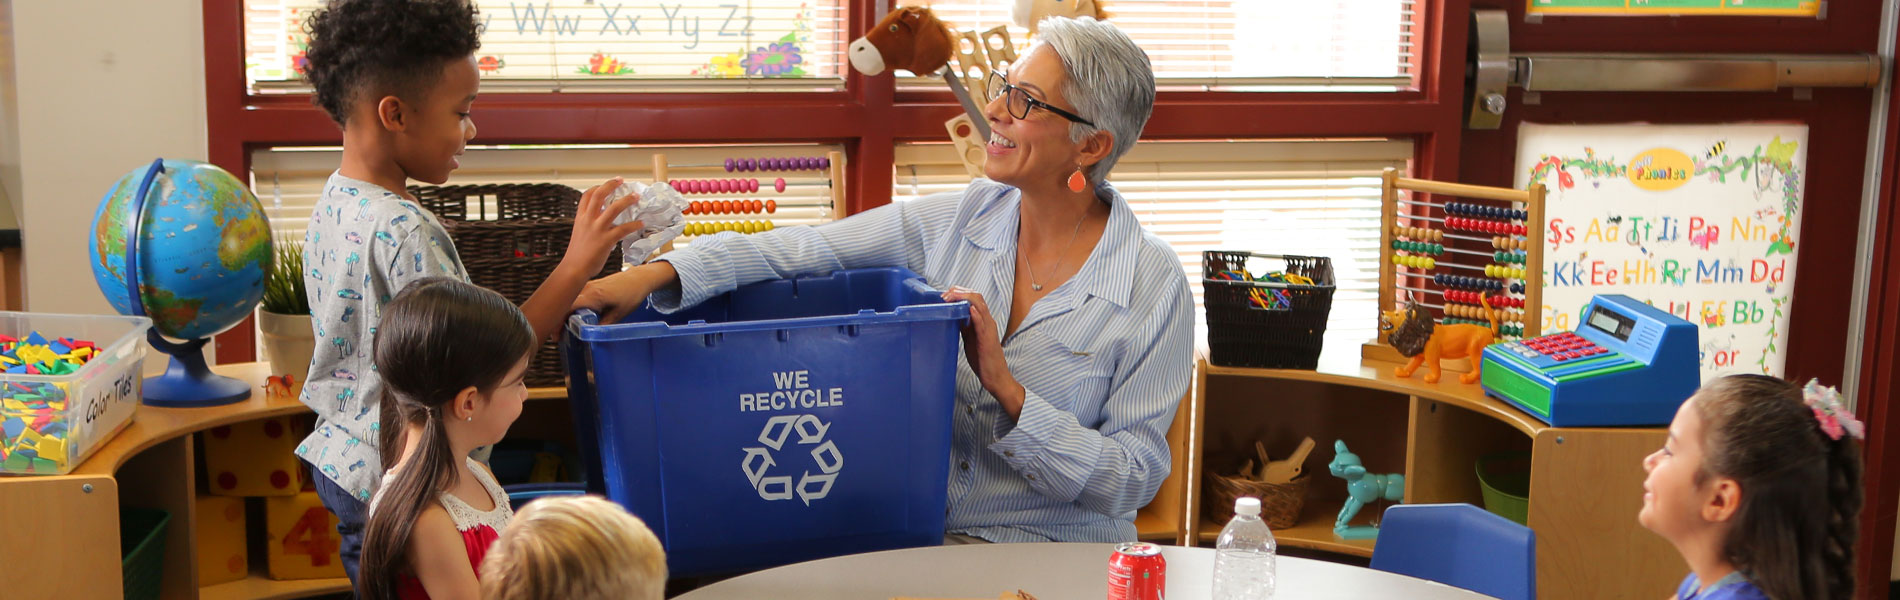 Woman holding recycling bin for children to toss recyclables into.